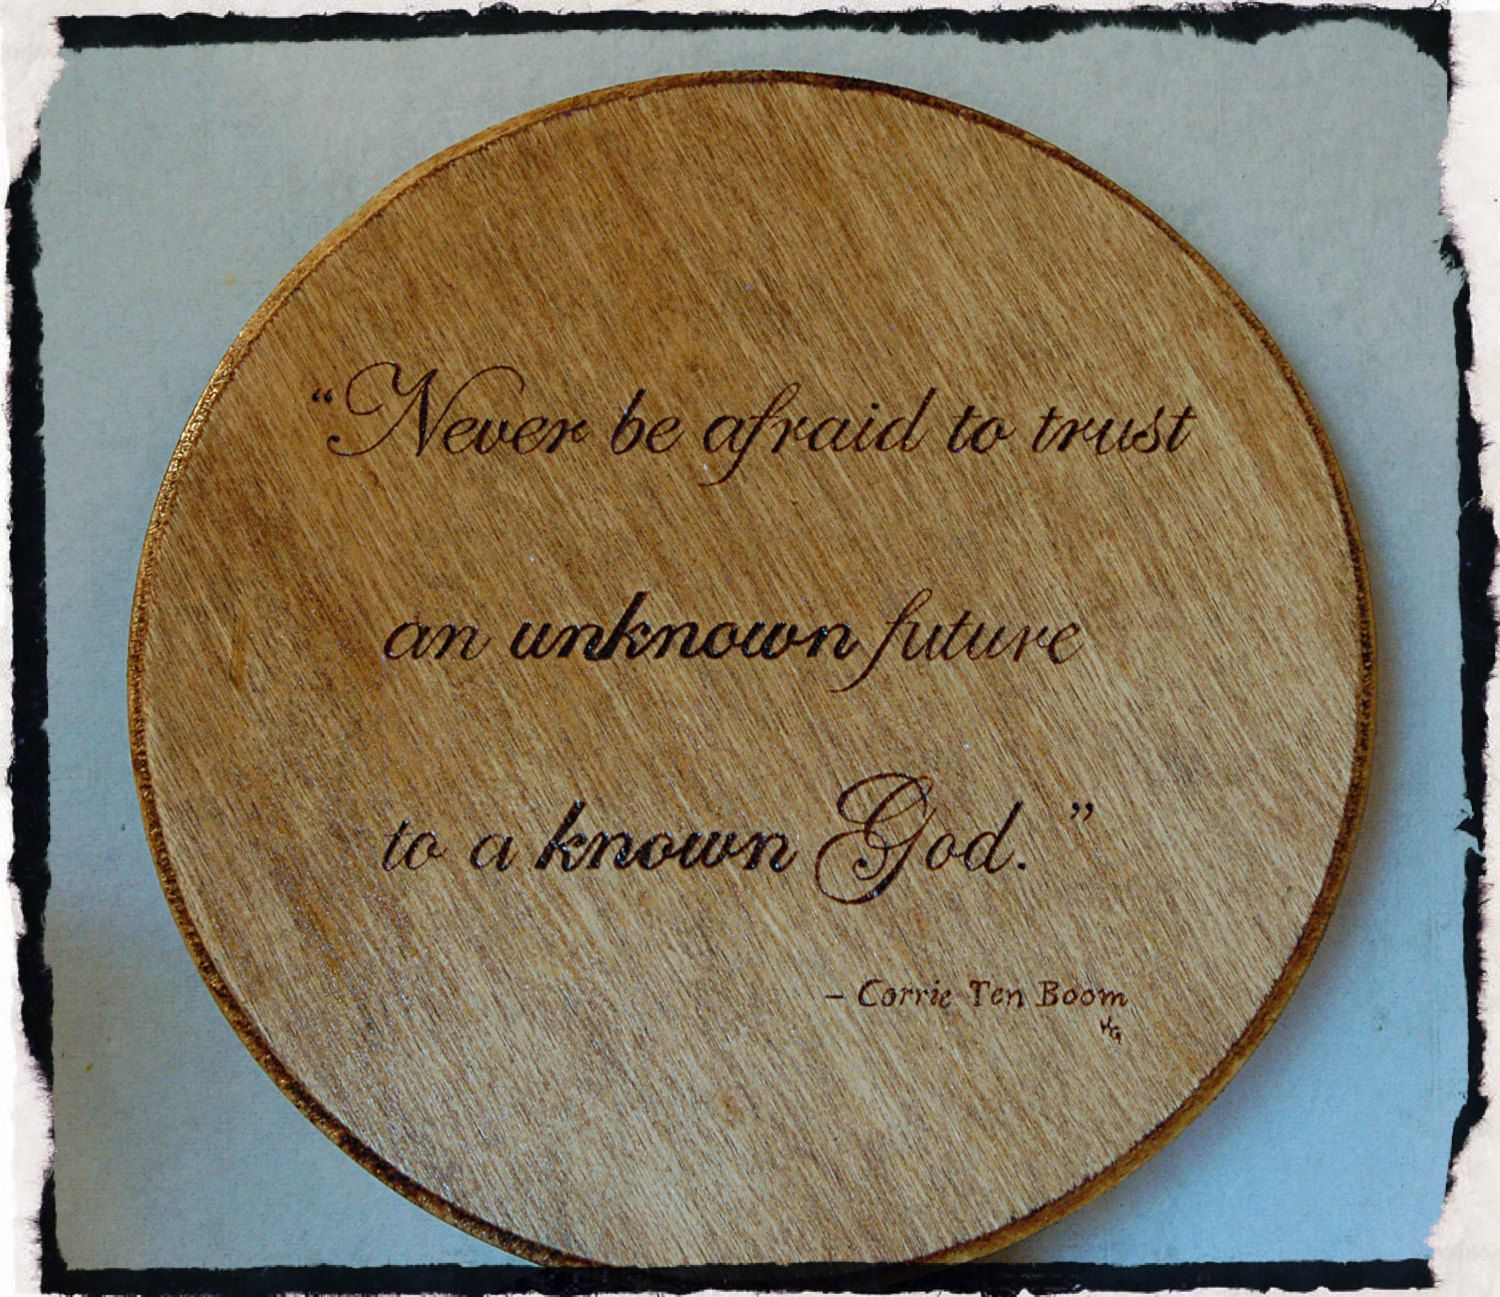 Round Plaque Wood Burned with Quote by Corrie Ten Boom by BeautifulPursuits on Etsy